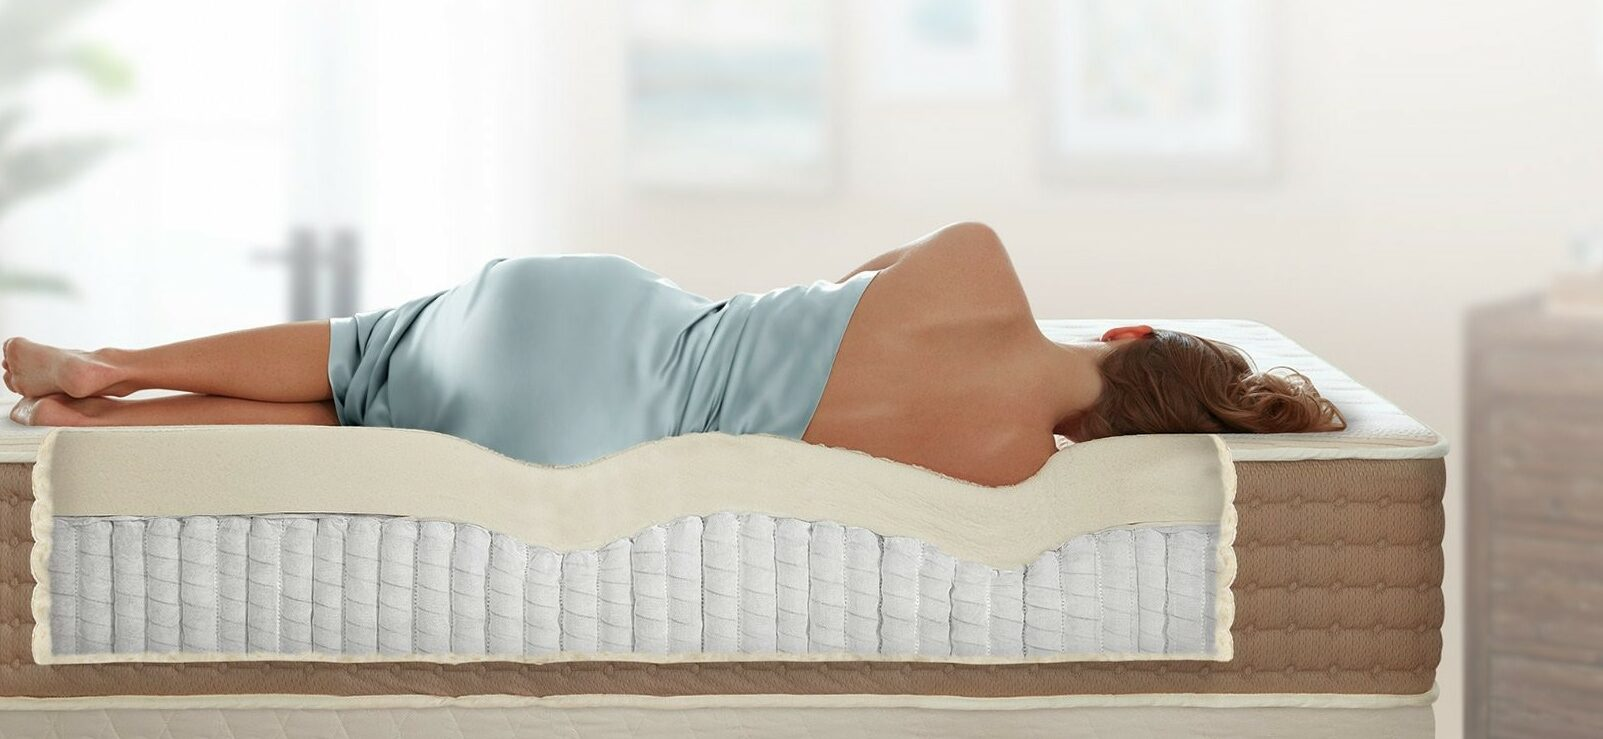 Woman lying on her side on a mattress showing how the mattress conforms well to the shape of her body